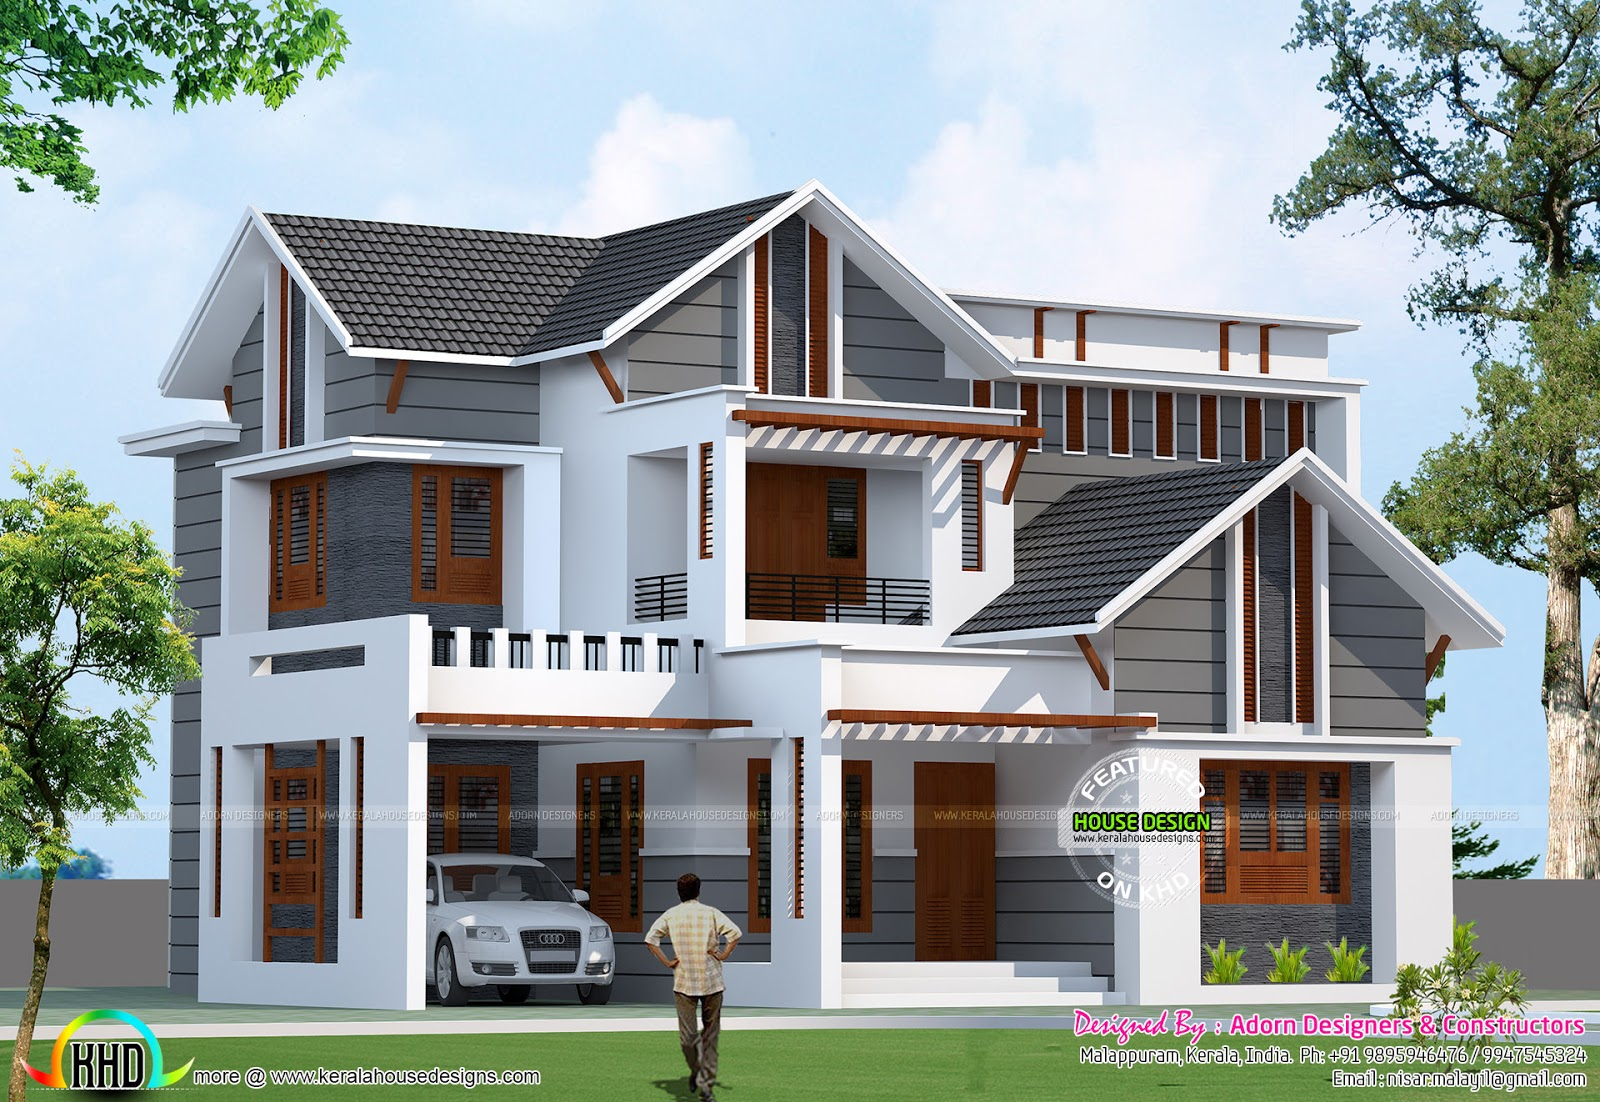 1970 square feet modern mix home kerala home design and for 1970 home designs